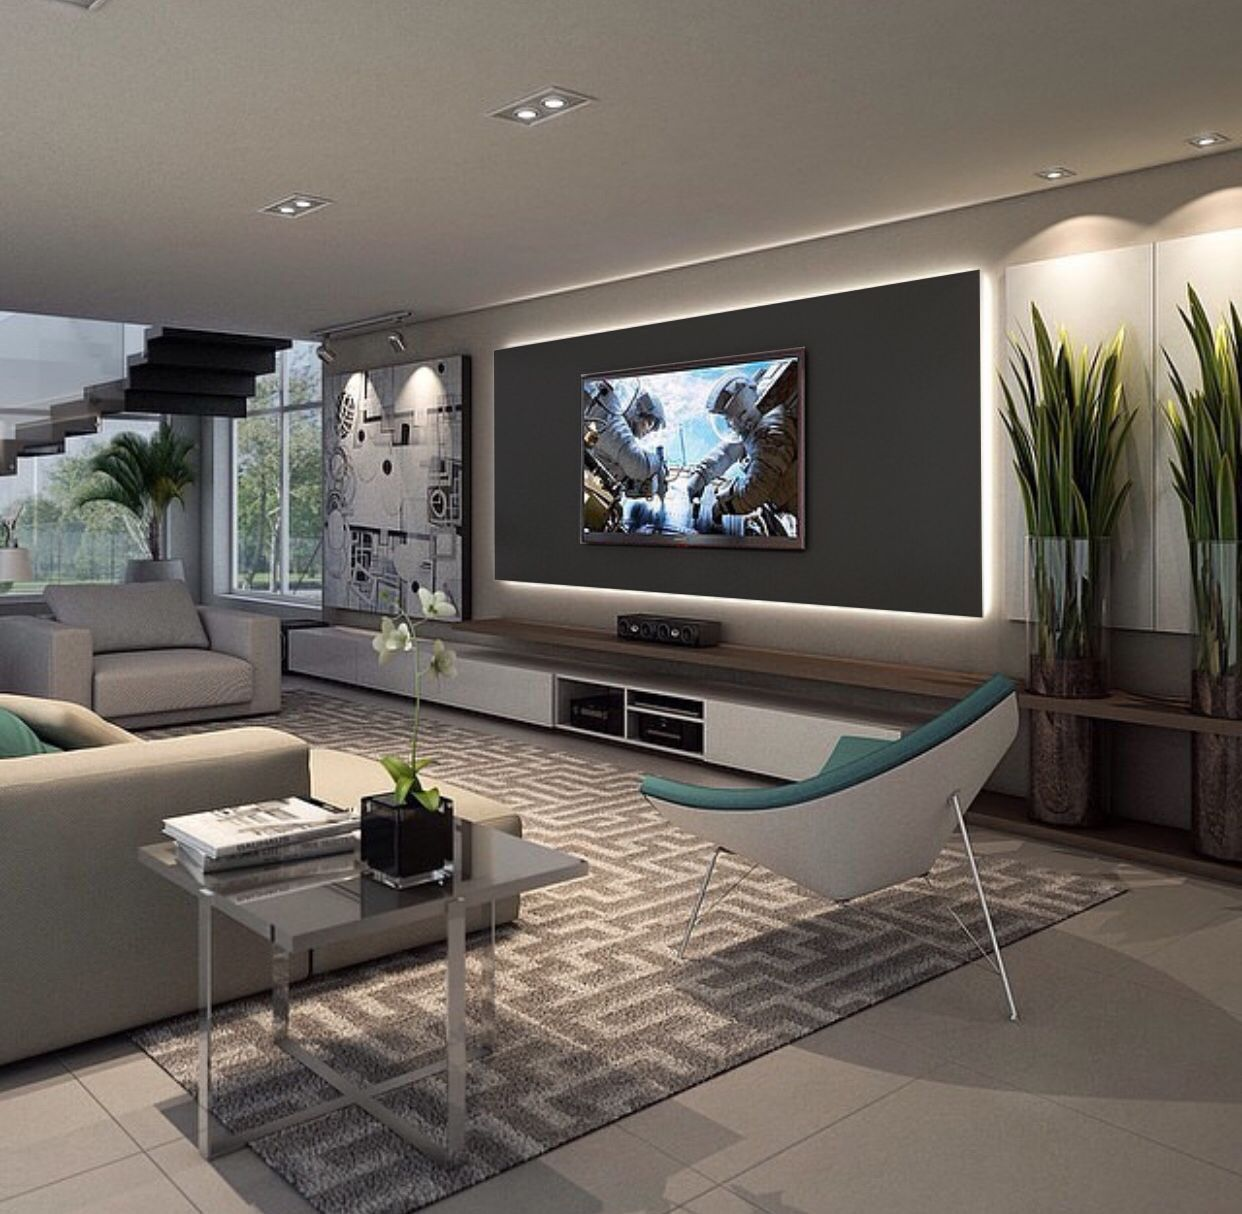 Finest Living Room Theater Jobs Made Easy Living Room Theaters Living Room Designs Home Living Room Living room means what